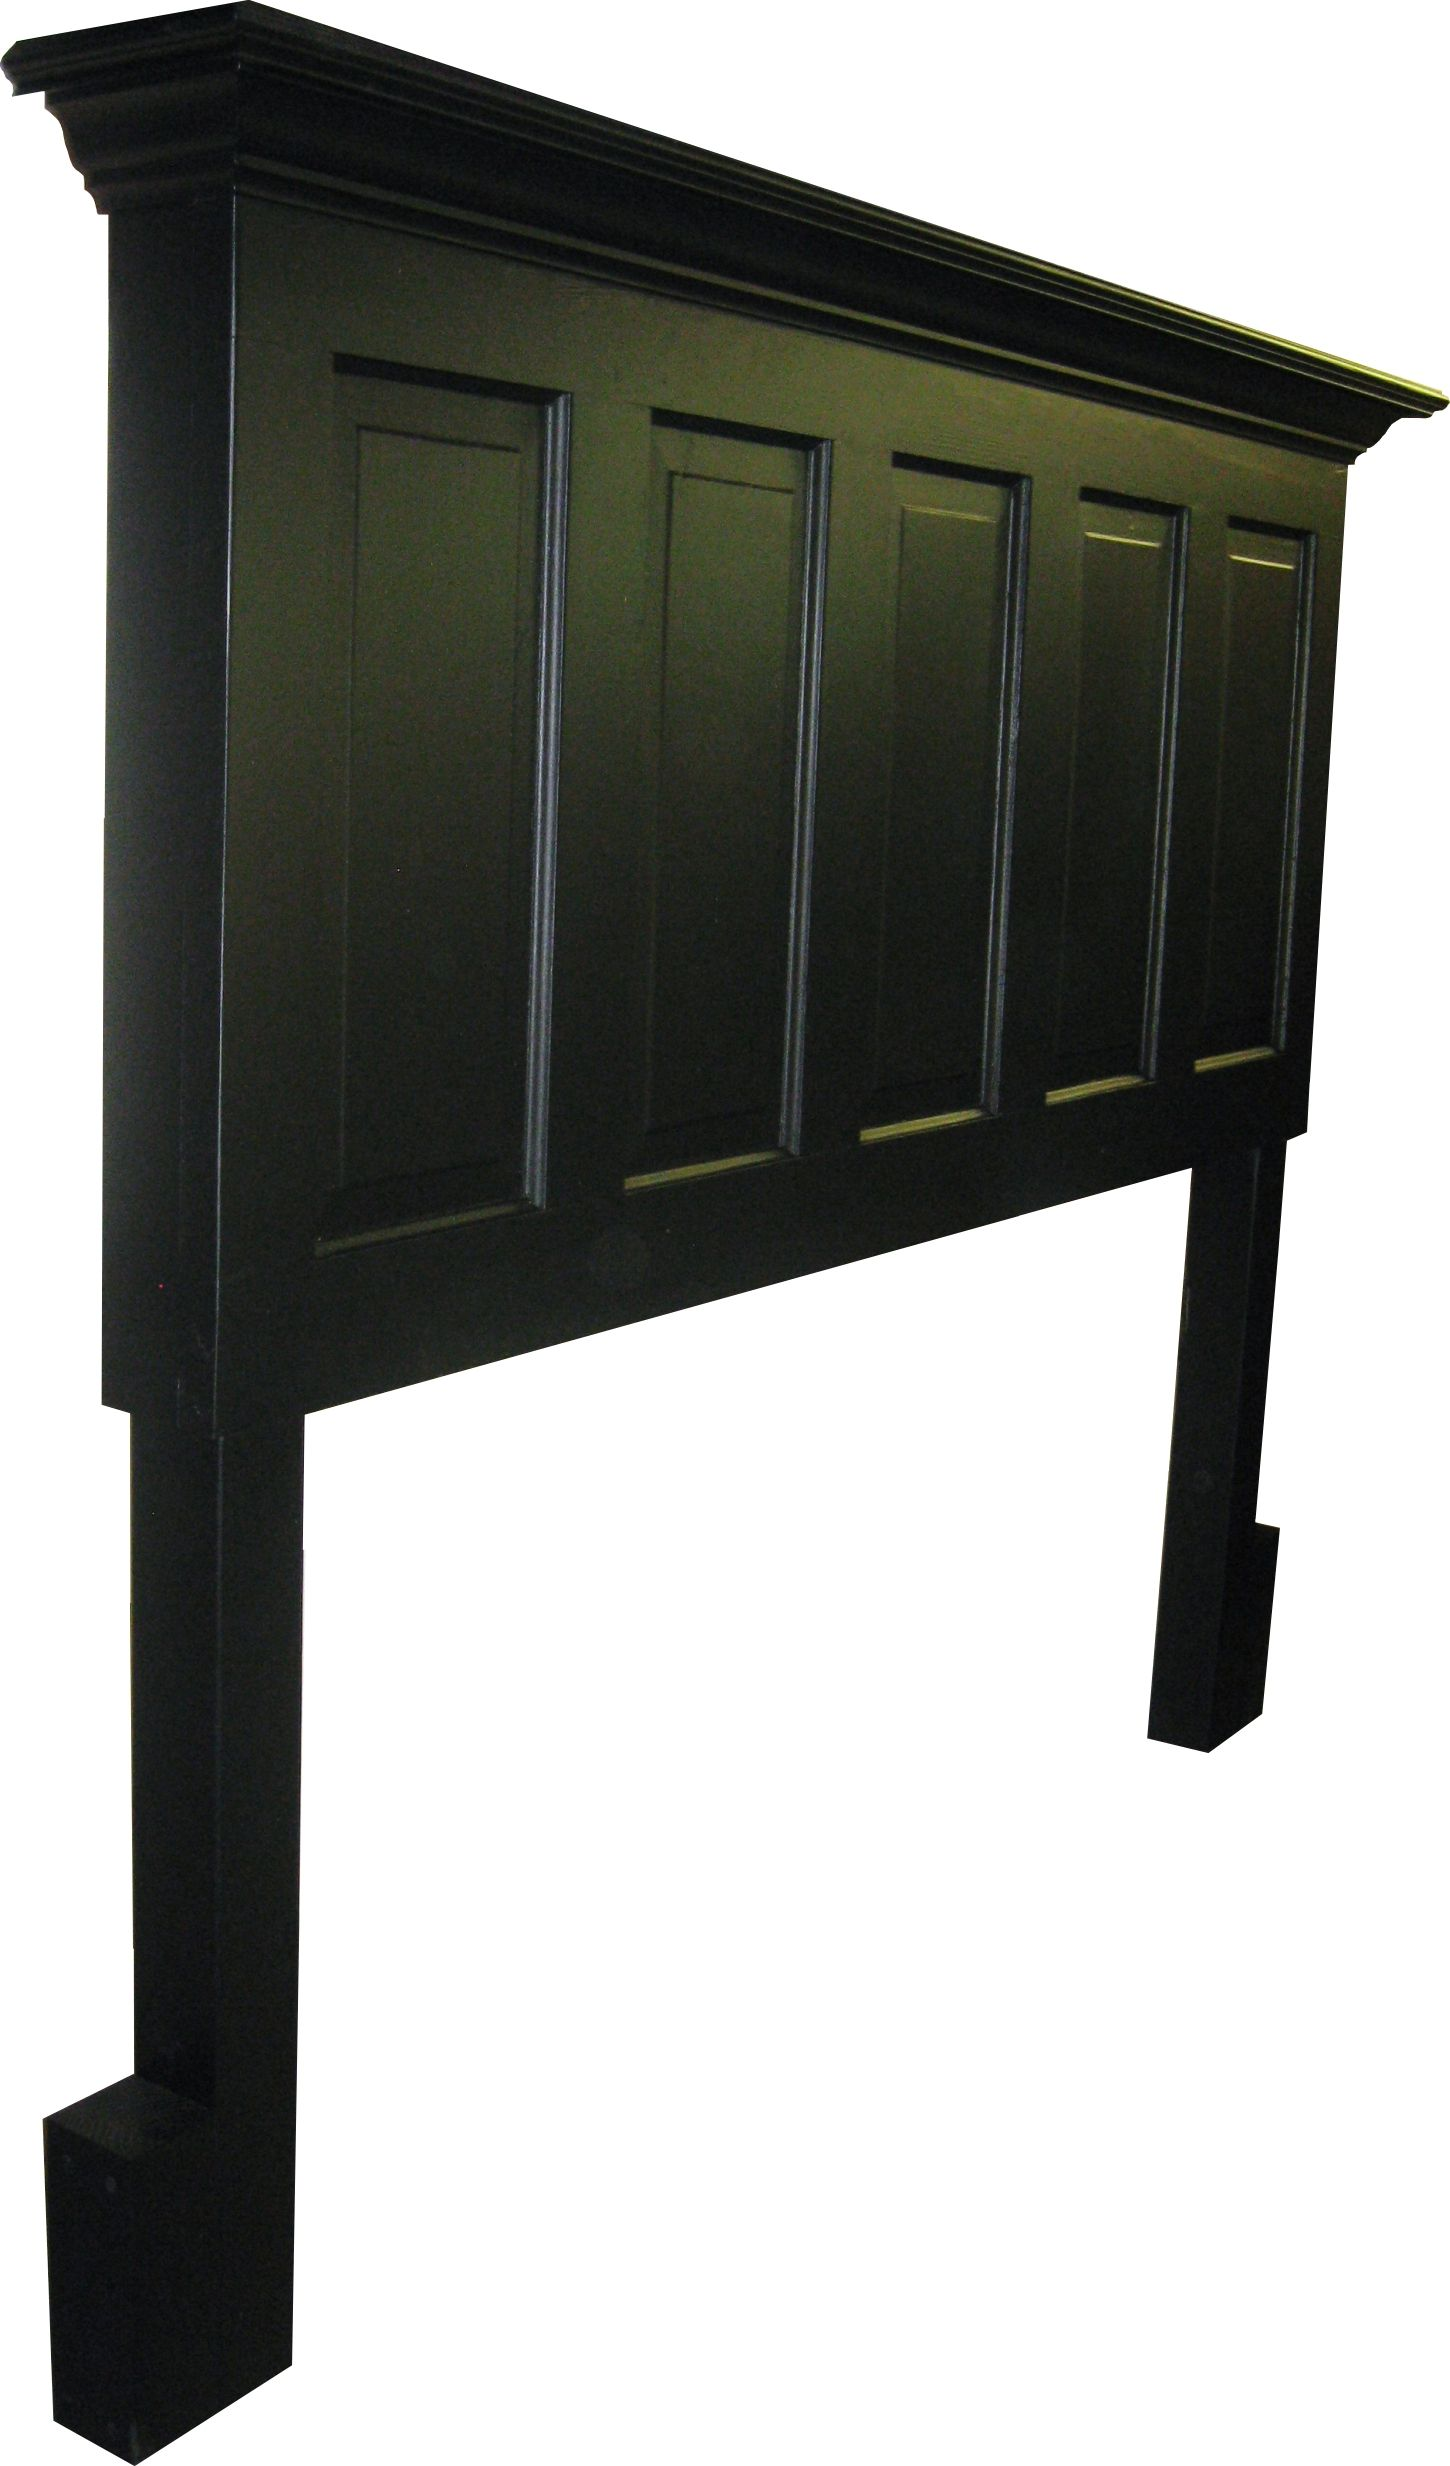 5 Panel Onyx Black King Size Headboard With Legs From Vintage Headboards